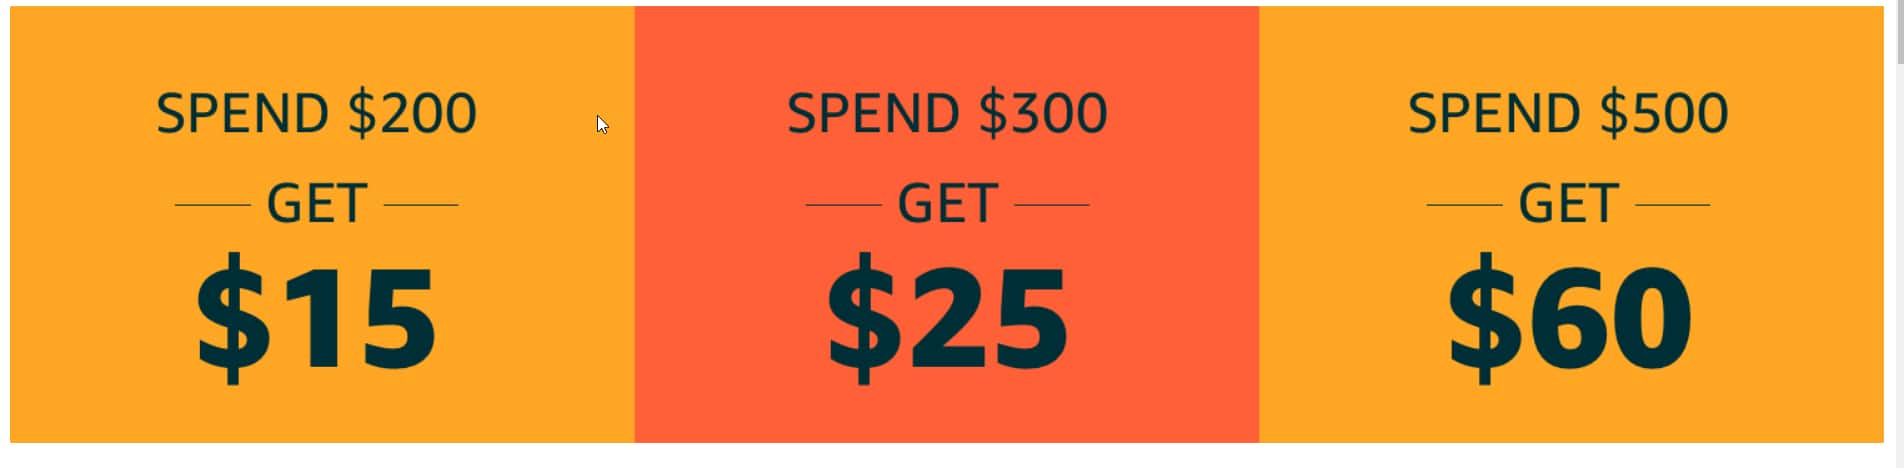 Only on Black Friday (Nov 29) and only in the Amazon app Get up to a $60 coupon toward a future purchase with the Amazon app (may be ymmv)